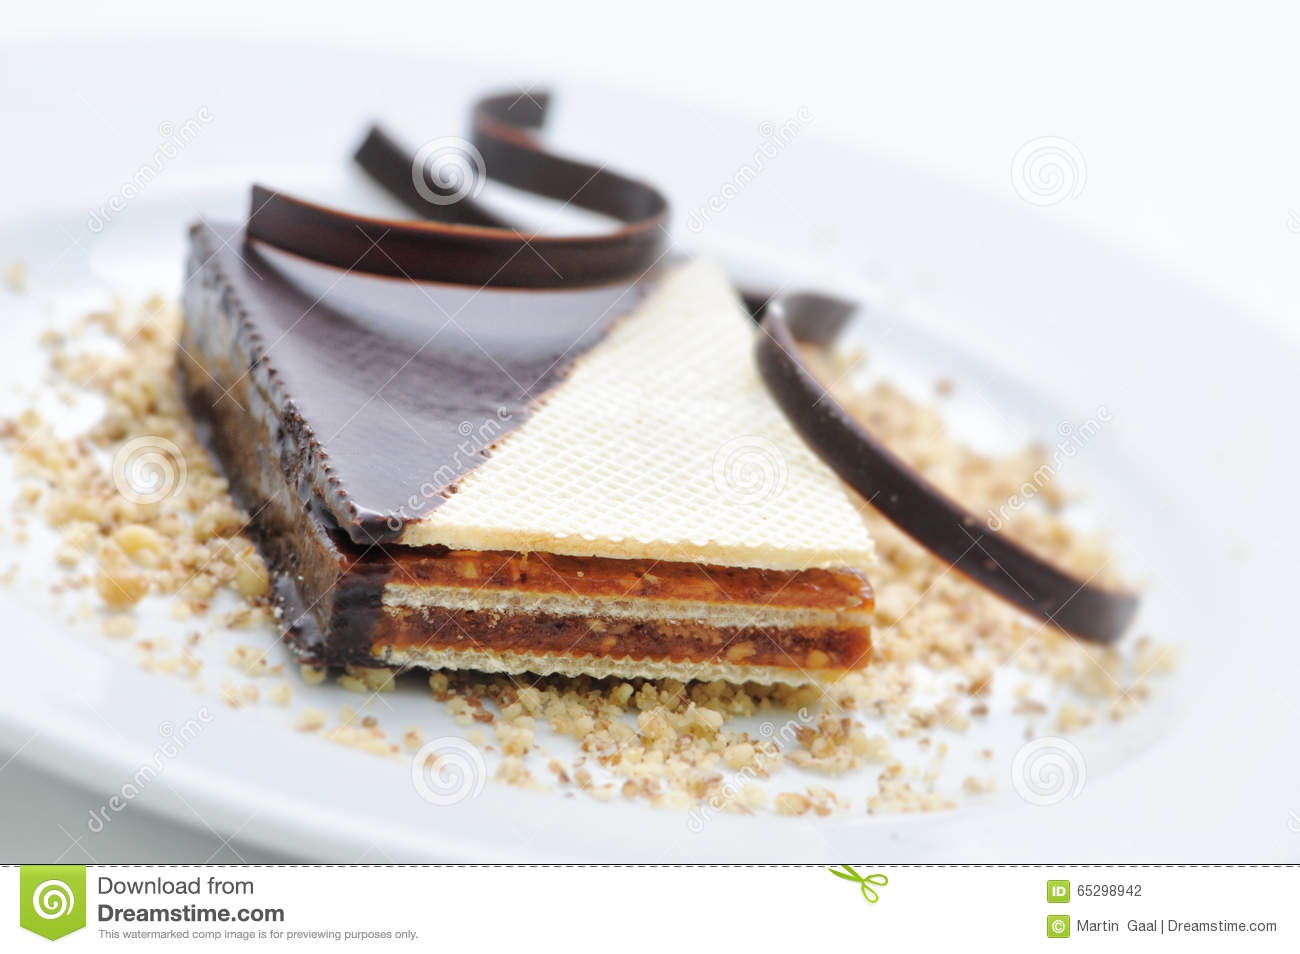 chocolate cake with coffee beans on white plate sweet dessert patisserie shop cocoa powder